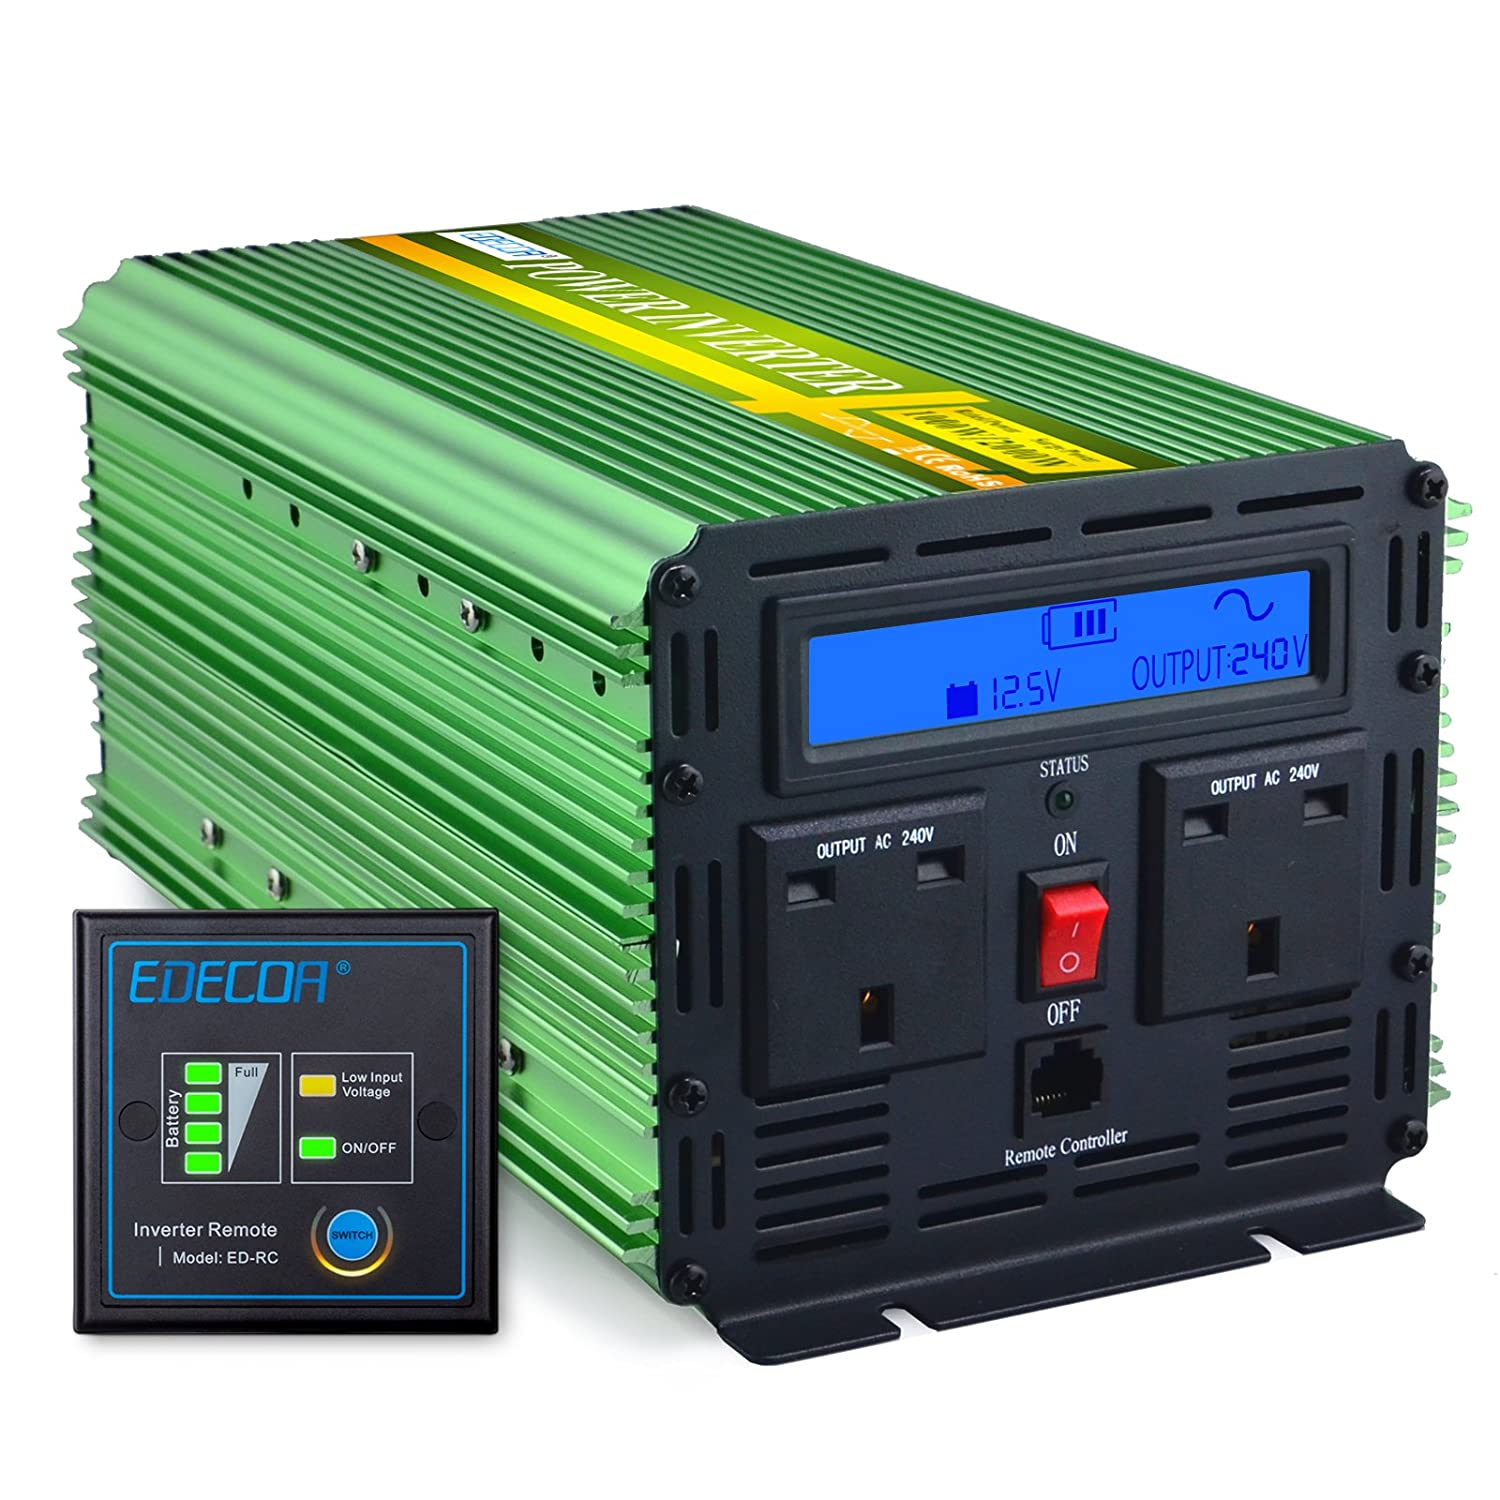 EDECOA 1000W Peak 2000W Pure Sine Wave Power Inverter DC 12V to AC 240V for Car Vehicle with LCD Display and Remote Control - Green CT9P21G10L